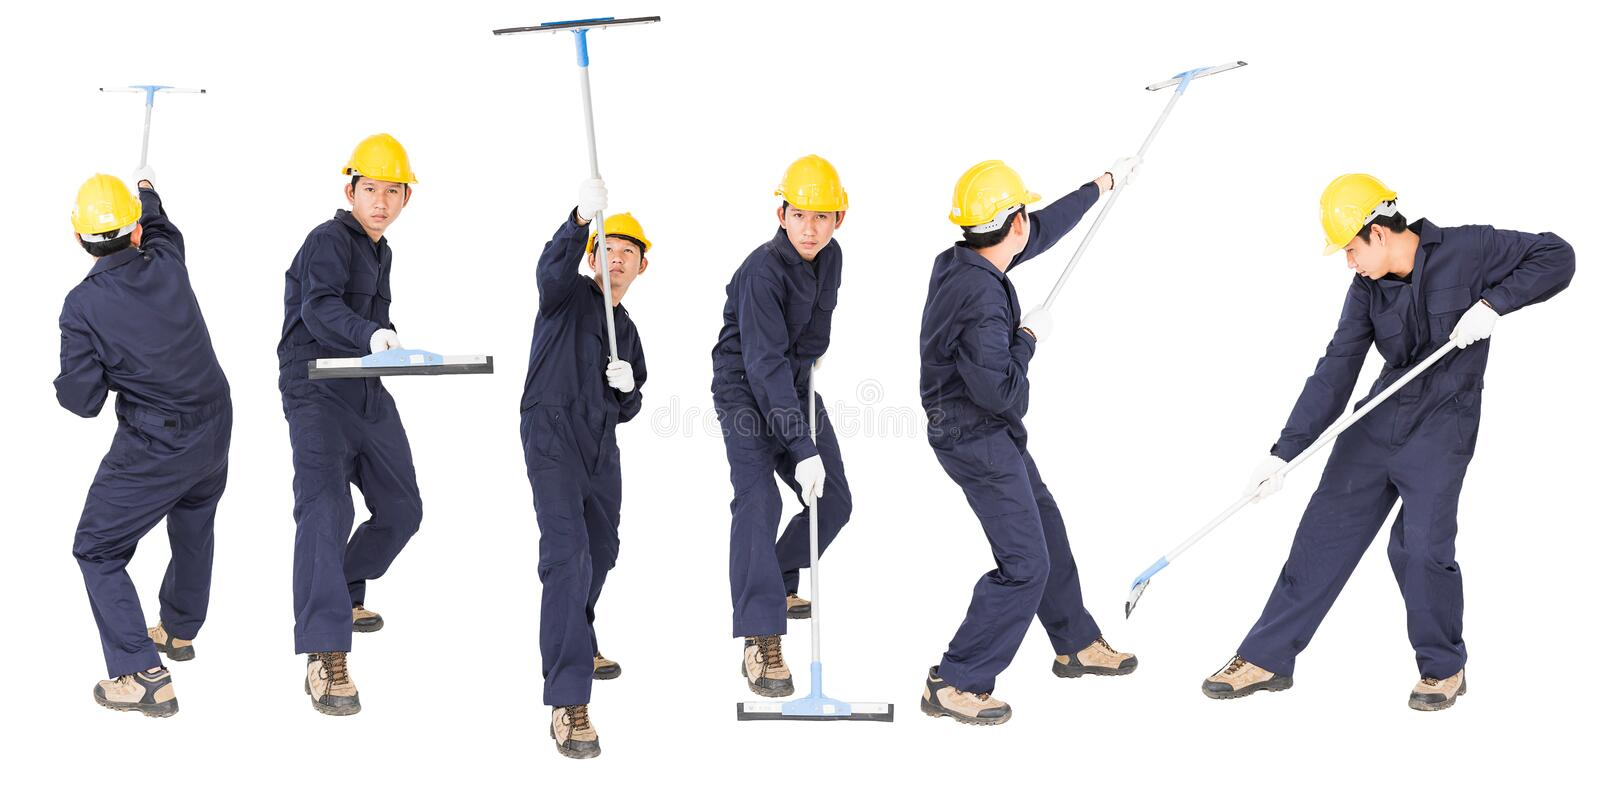 Set of Young man hold squeegee window cleaner isolated on white. Set of Young man in uniform hold mop for cleaning glass window, Cut out isolated on white royalty free stock photos